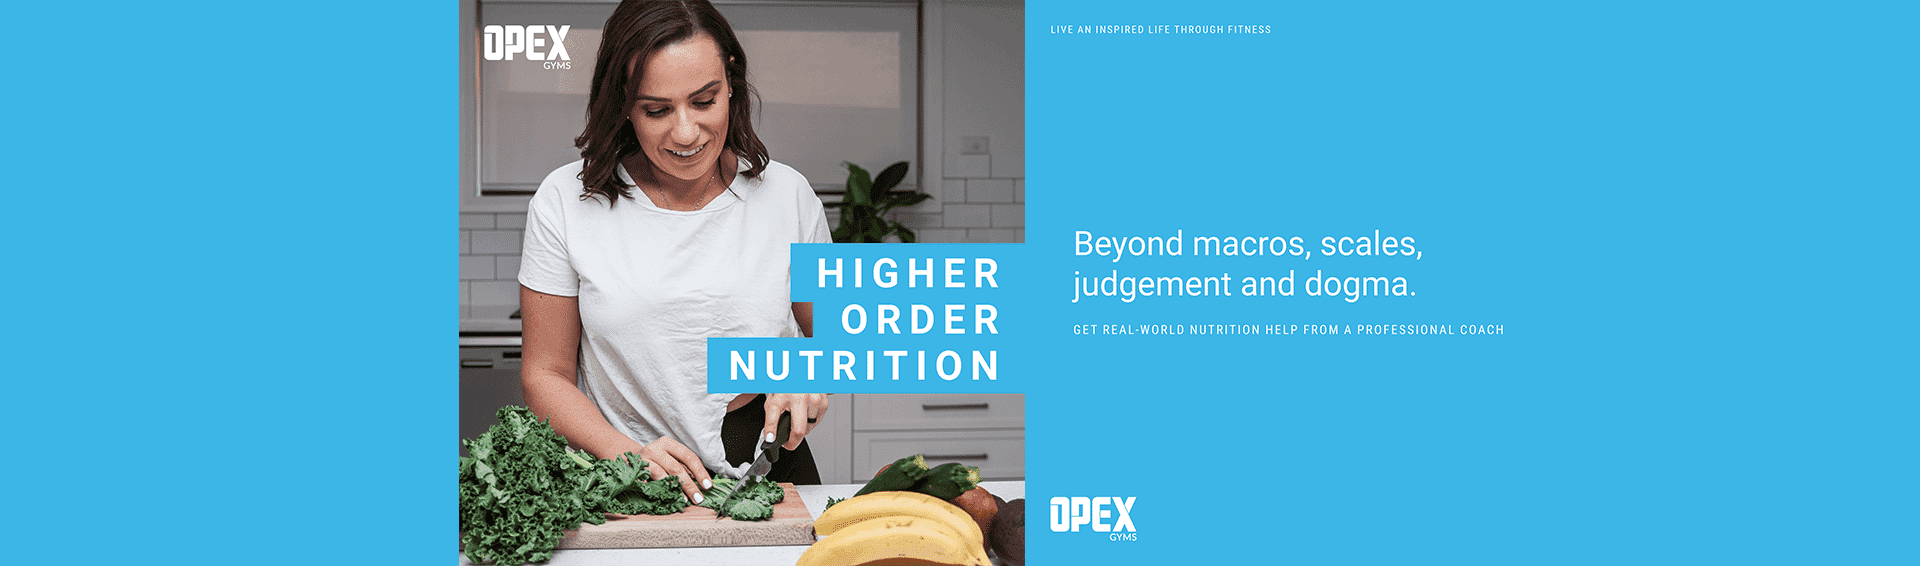 Higher-Order Nutrition